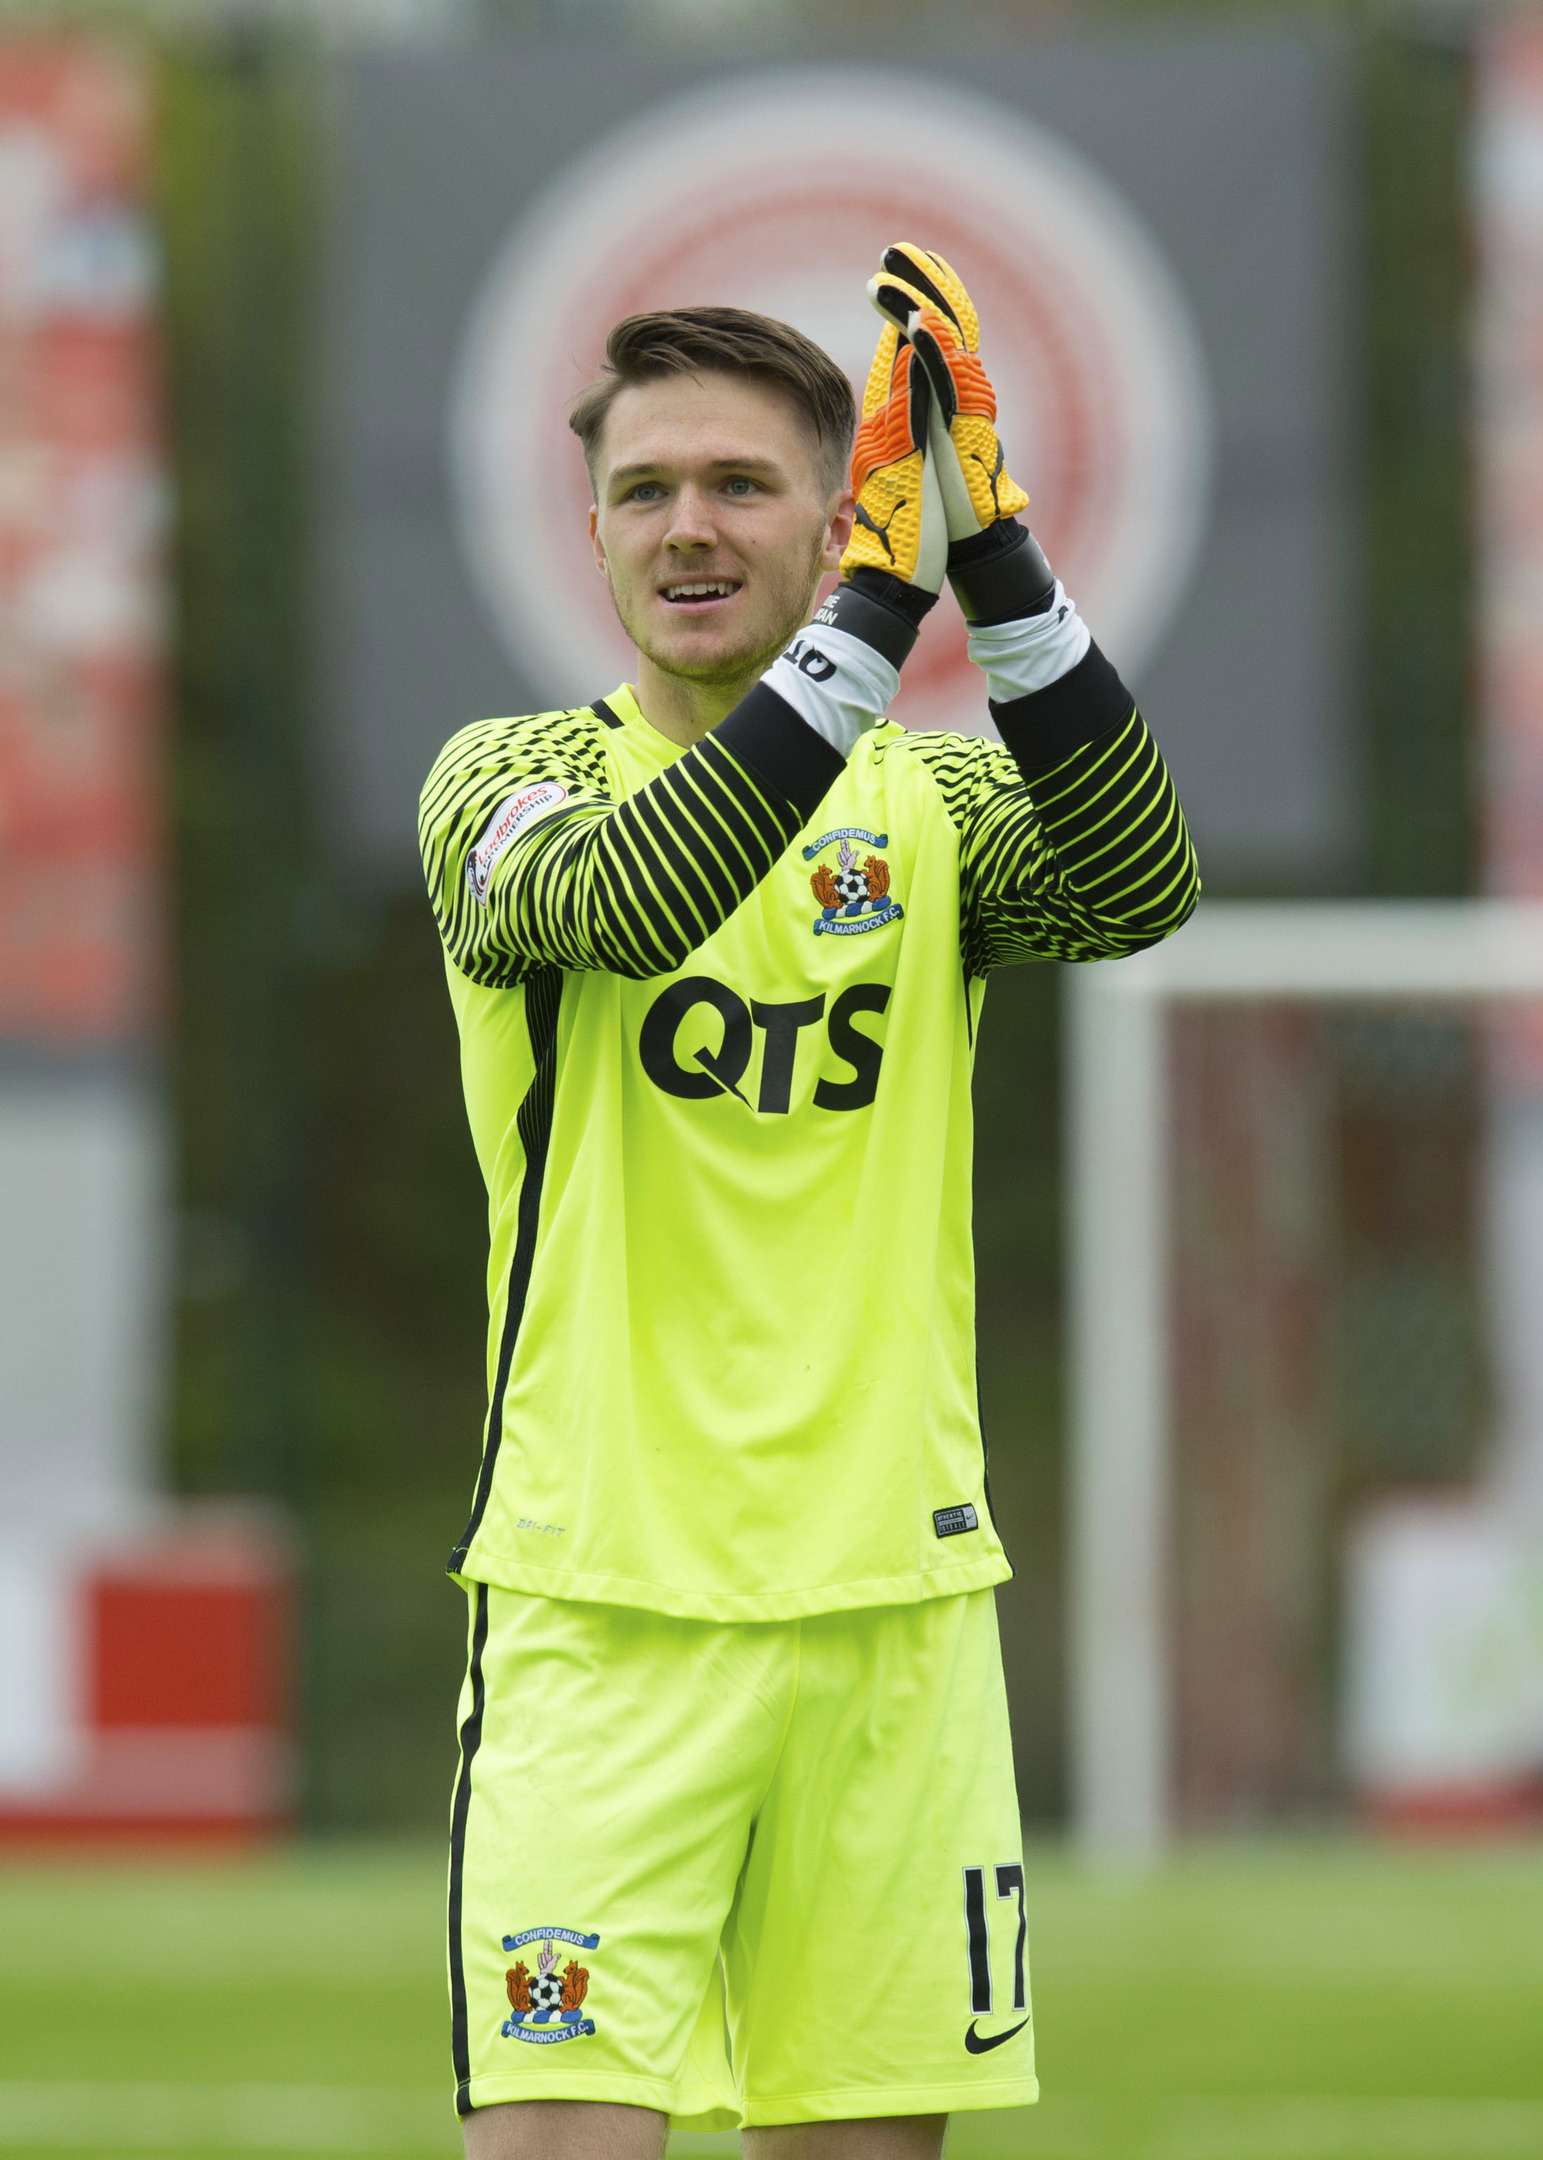 New Aberdeen signing Freddie Woodman, pictured in action for Kilmarnock last season, has the potential to be a Newcastle and England number one.